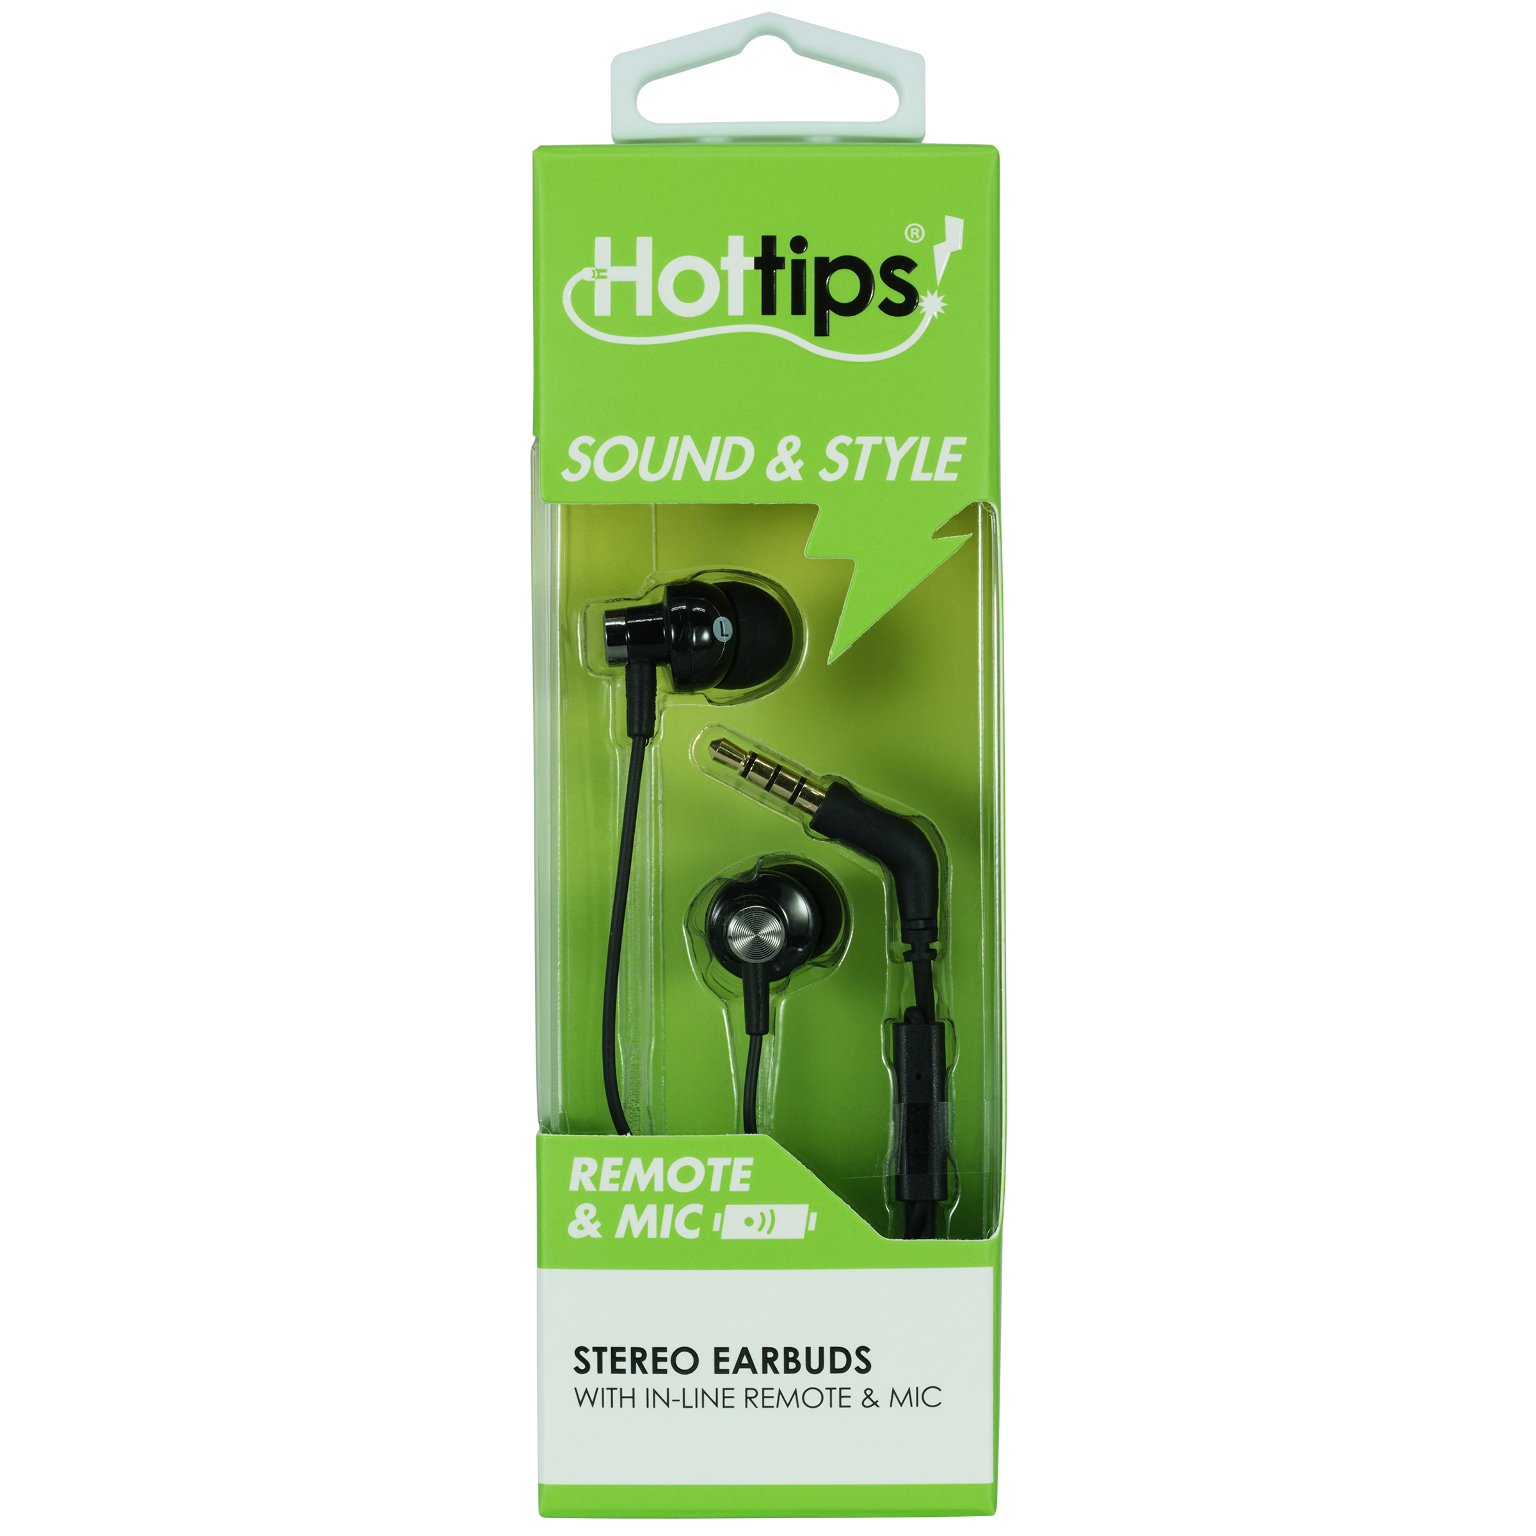 Hottips High Sound Quality Earbuds with Mic- Case of 48 (1876668)